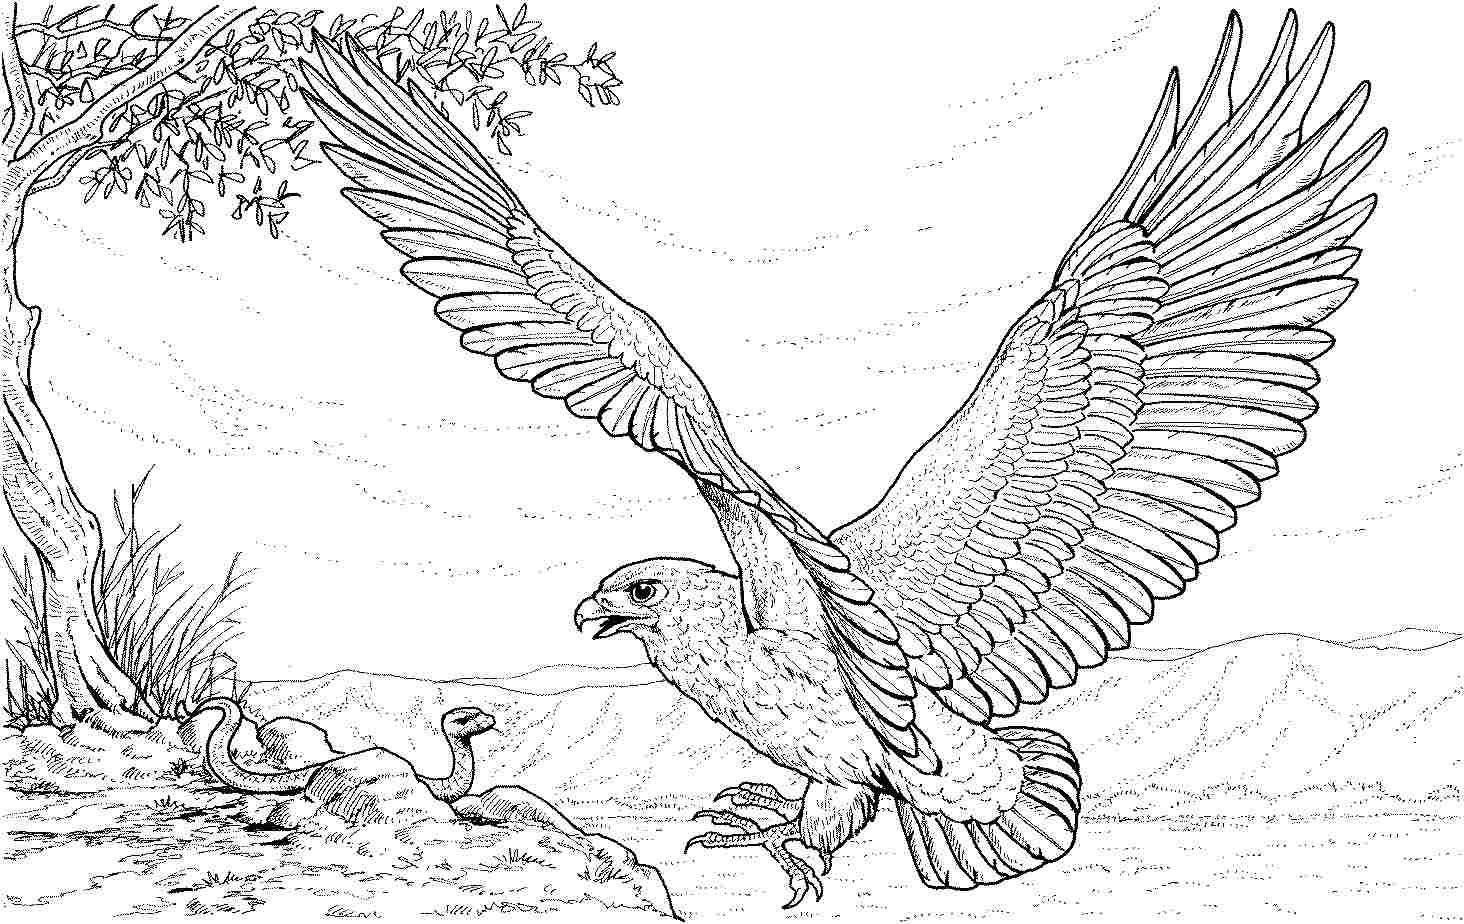 90 Animal Eagle Coloring Pages Printable Jpg 1 464 924 Pixels Animal Coloring Books Snake Coloring Pages Farm Animal Coloring Pages